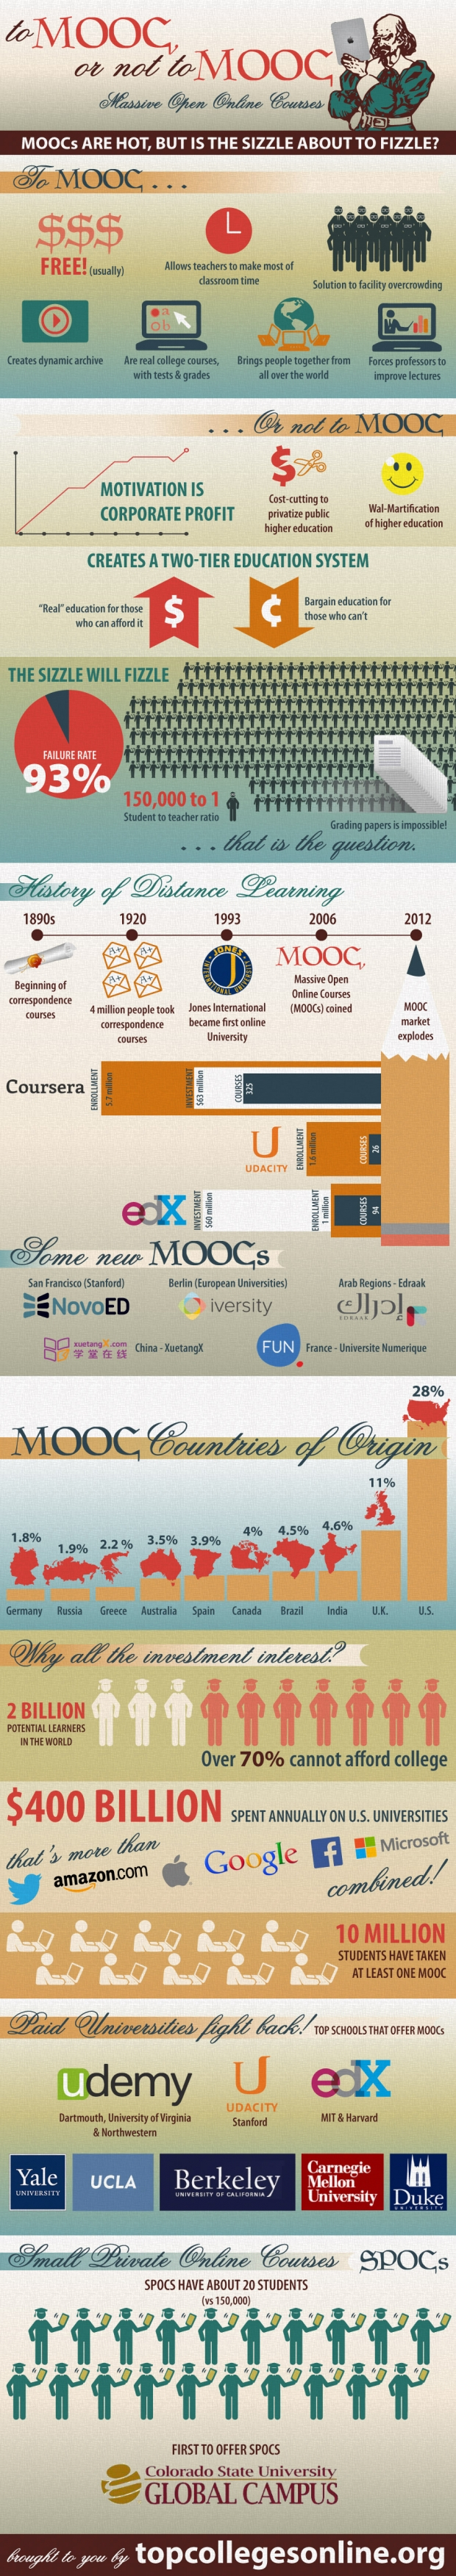 To Mooc Or Not To Mooc Infographic Educational Infographic Moocs Online Education